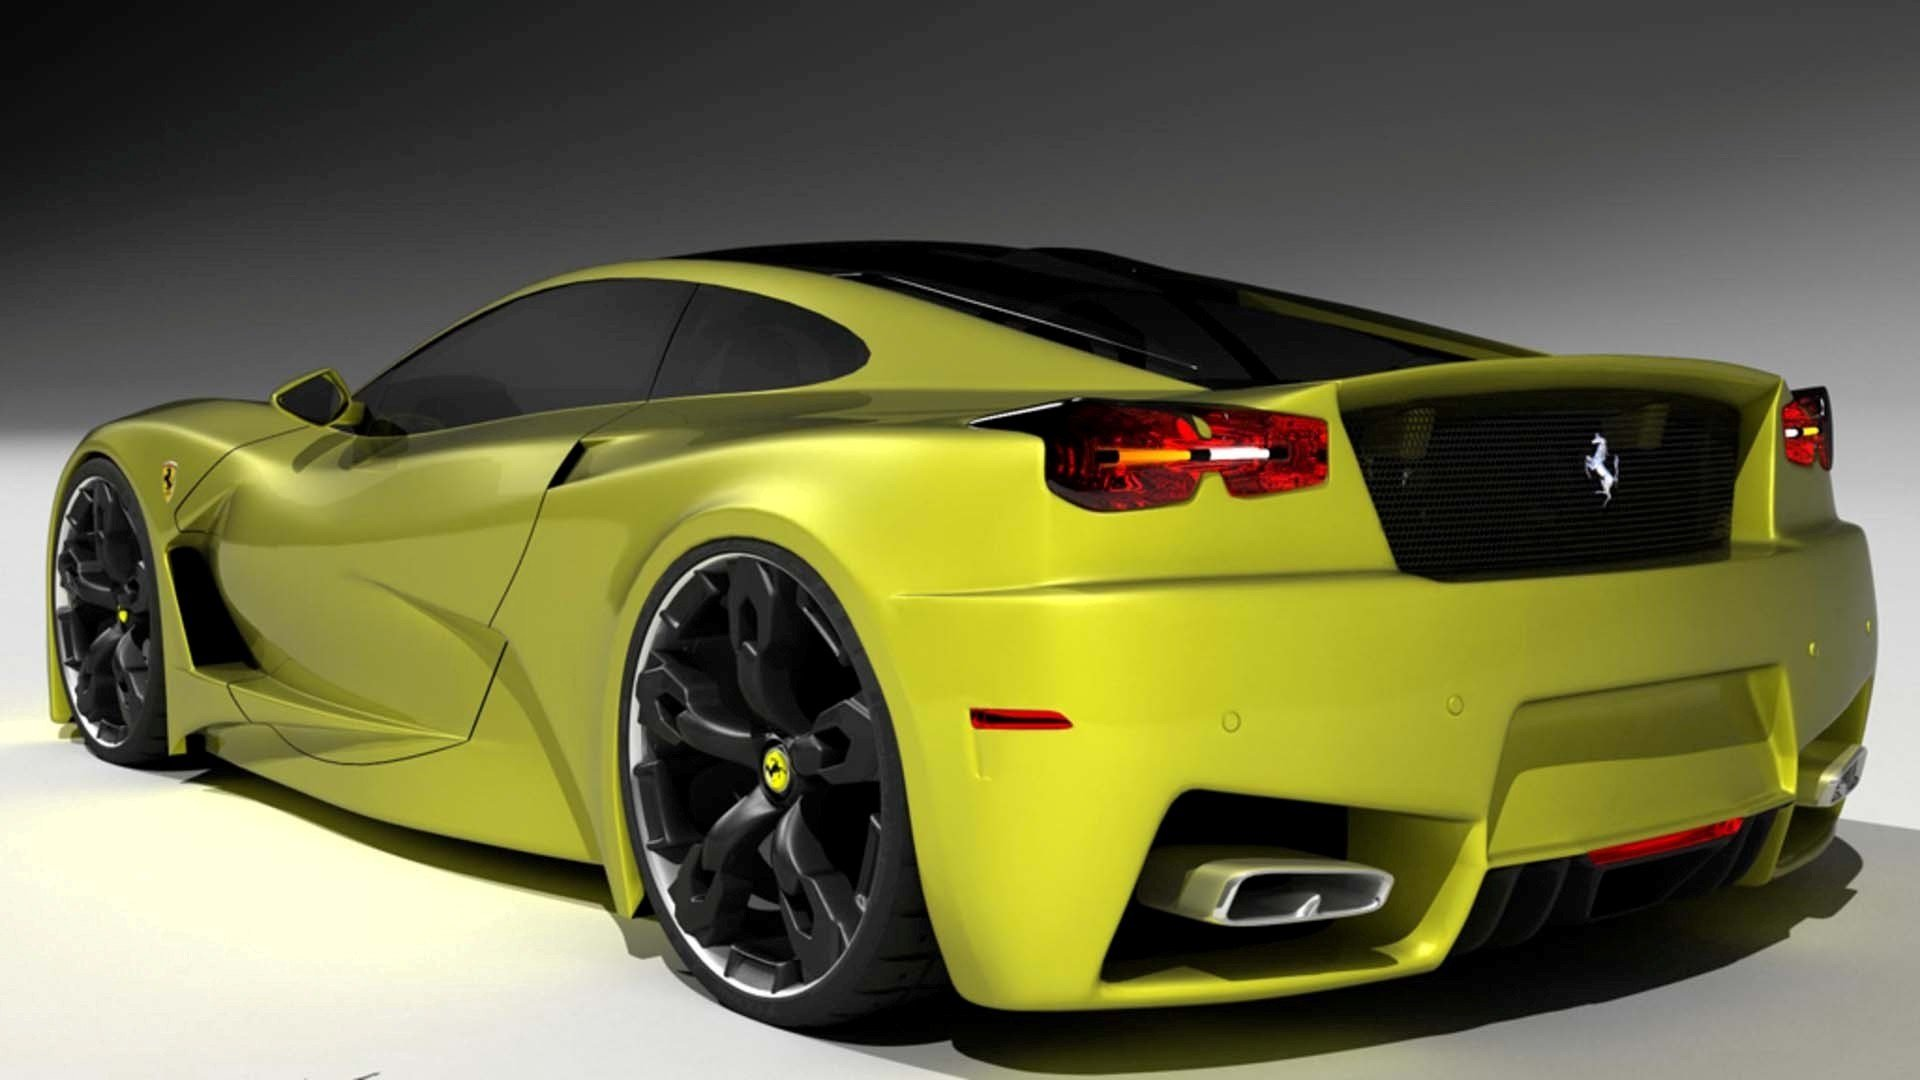 New Cool Ferrari Hd Car Wallpaper Hd Wallpapers On This Month